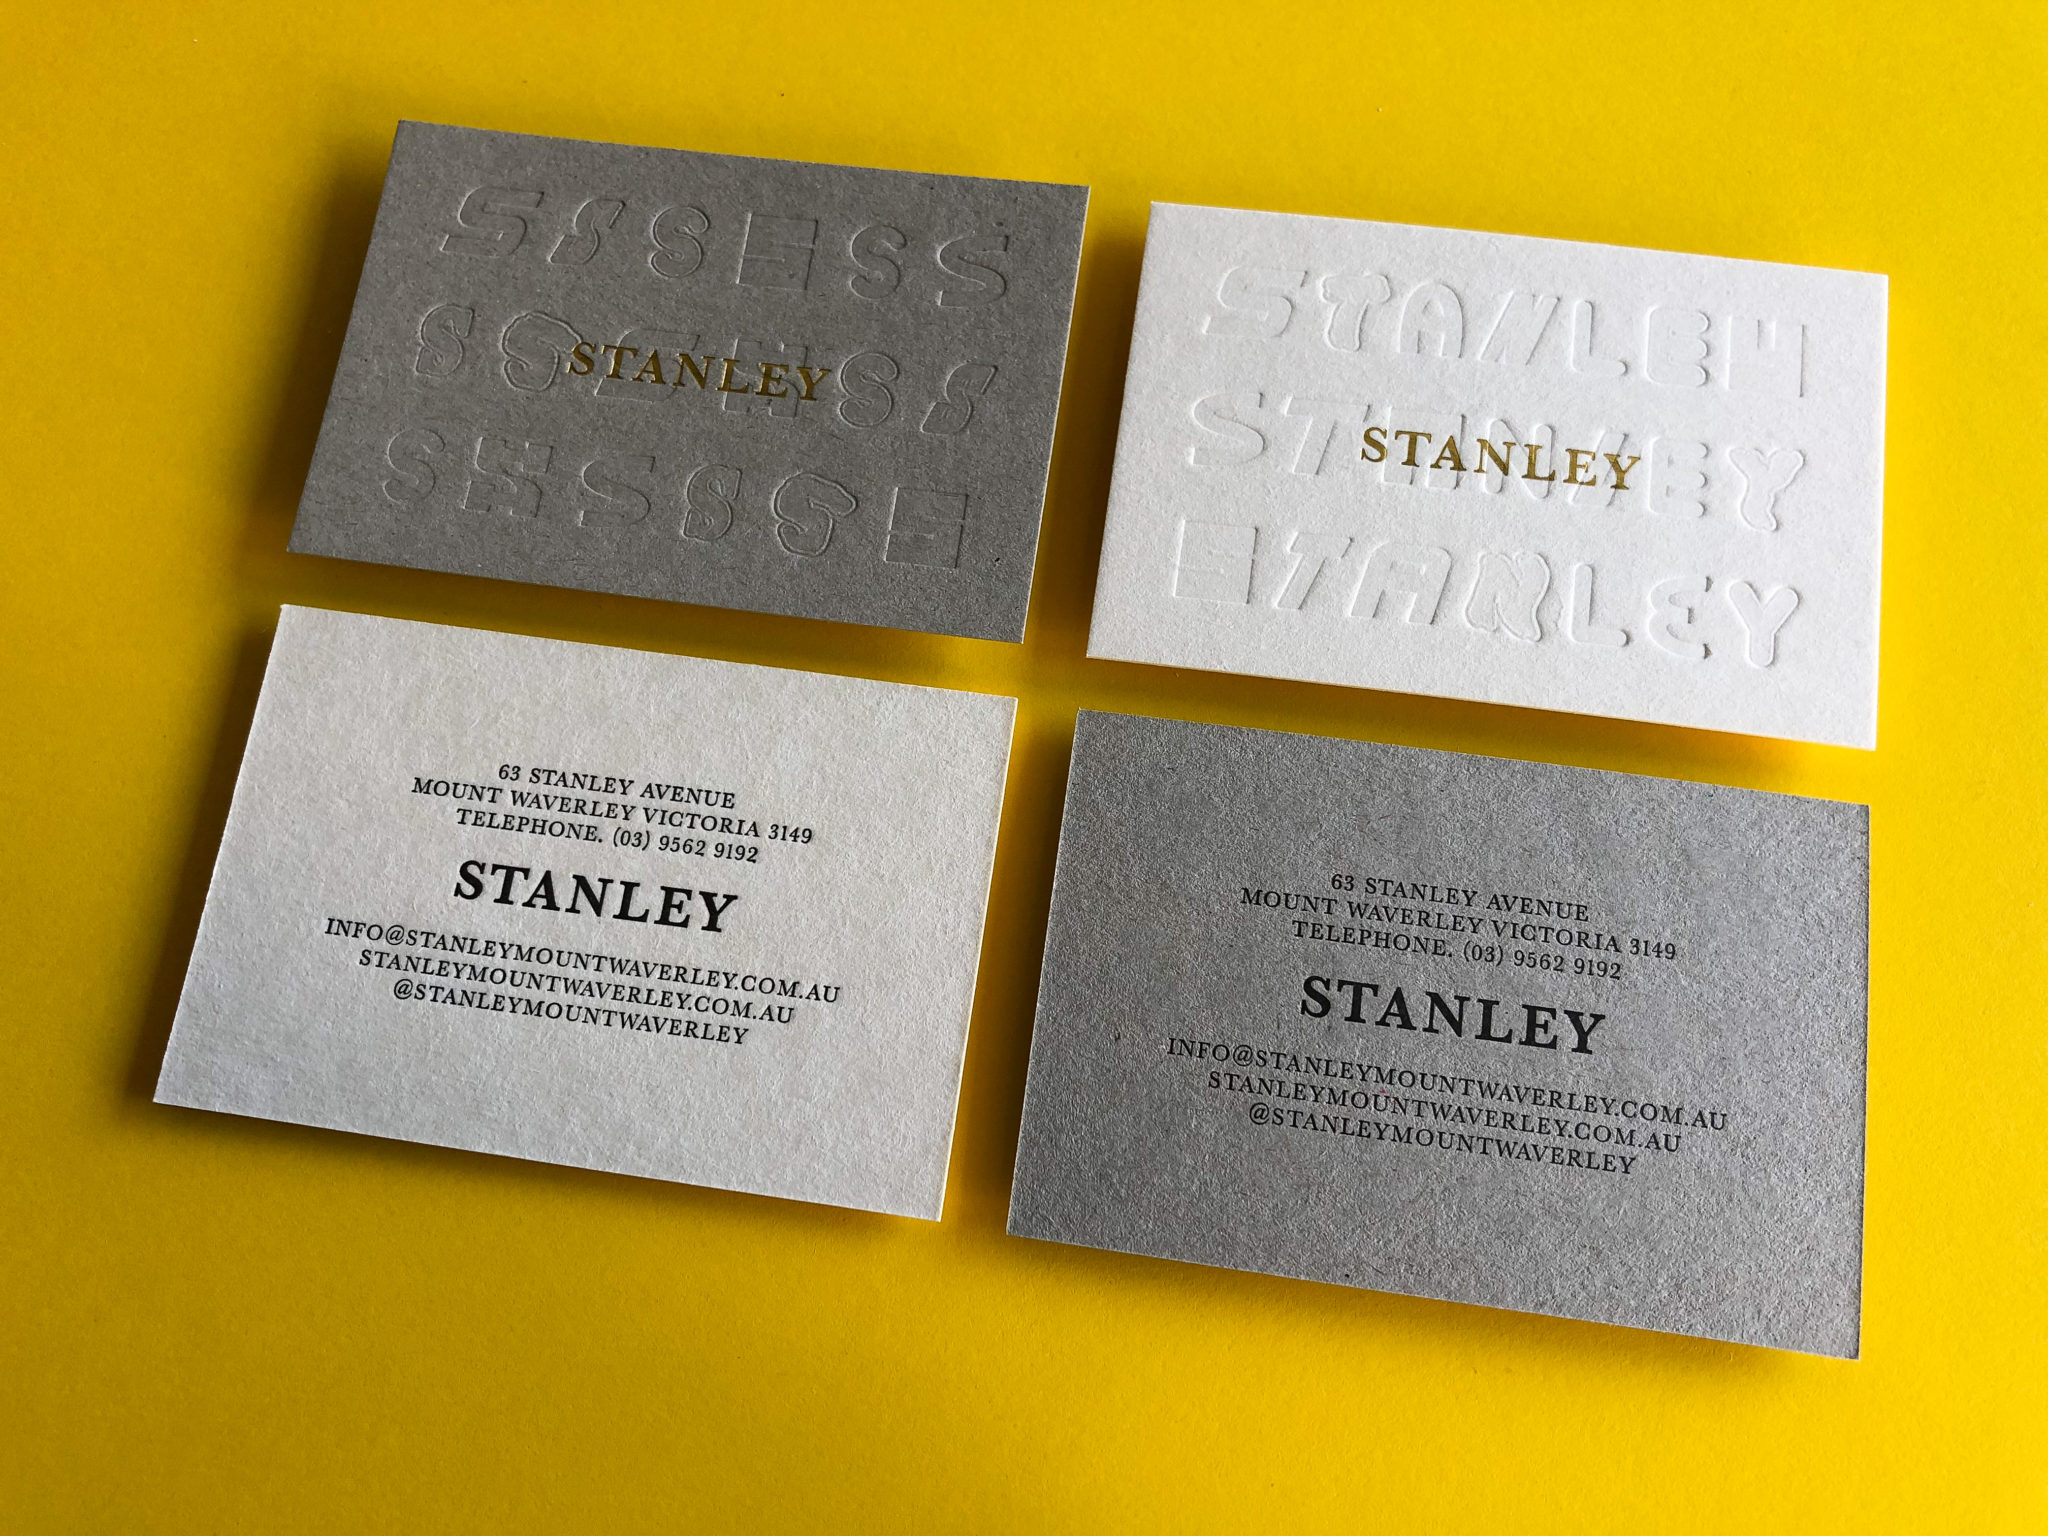 Gold Foil and Letterpress Business Cards for Stanley on Beer Matt Board and Boxboard 3